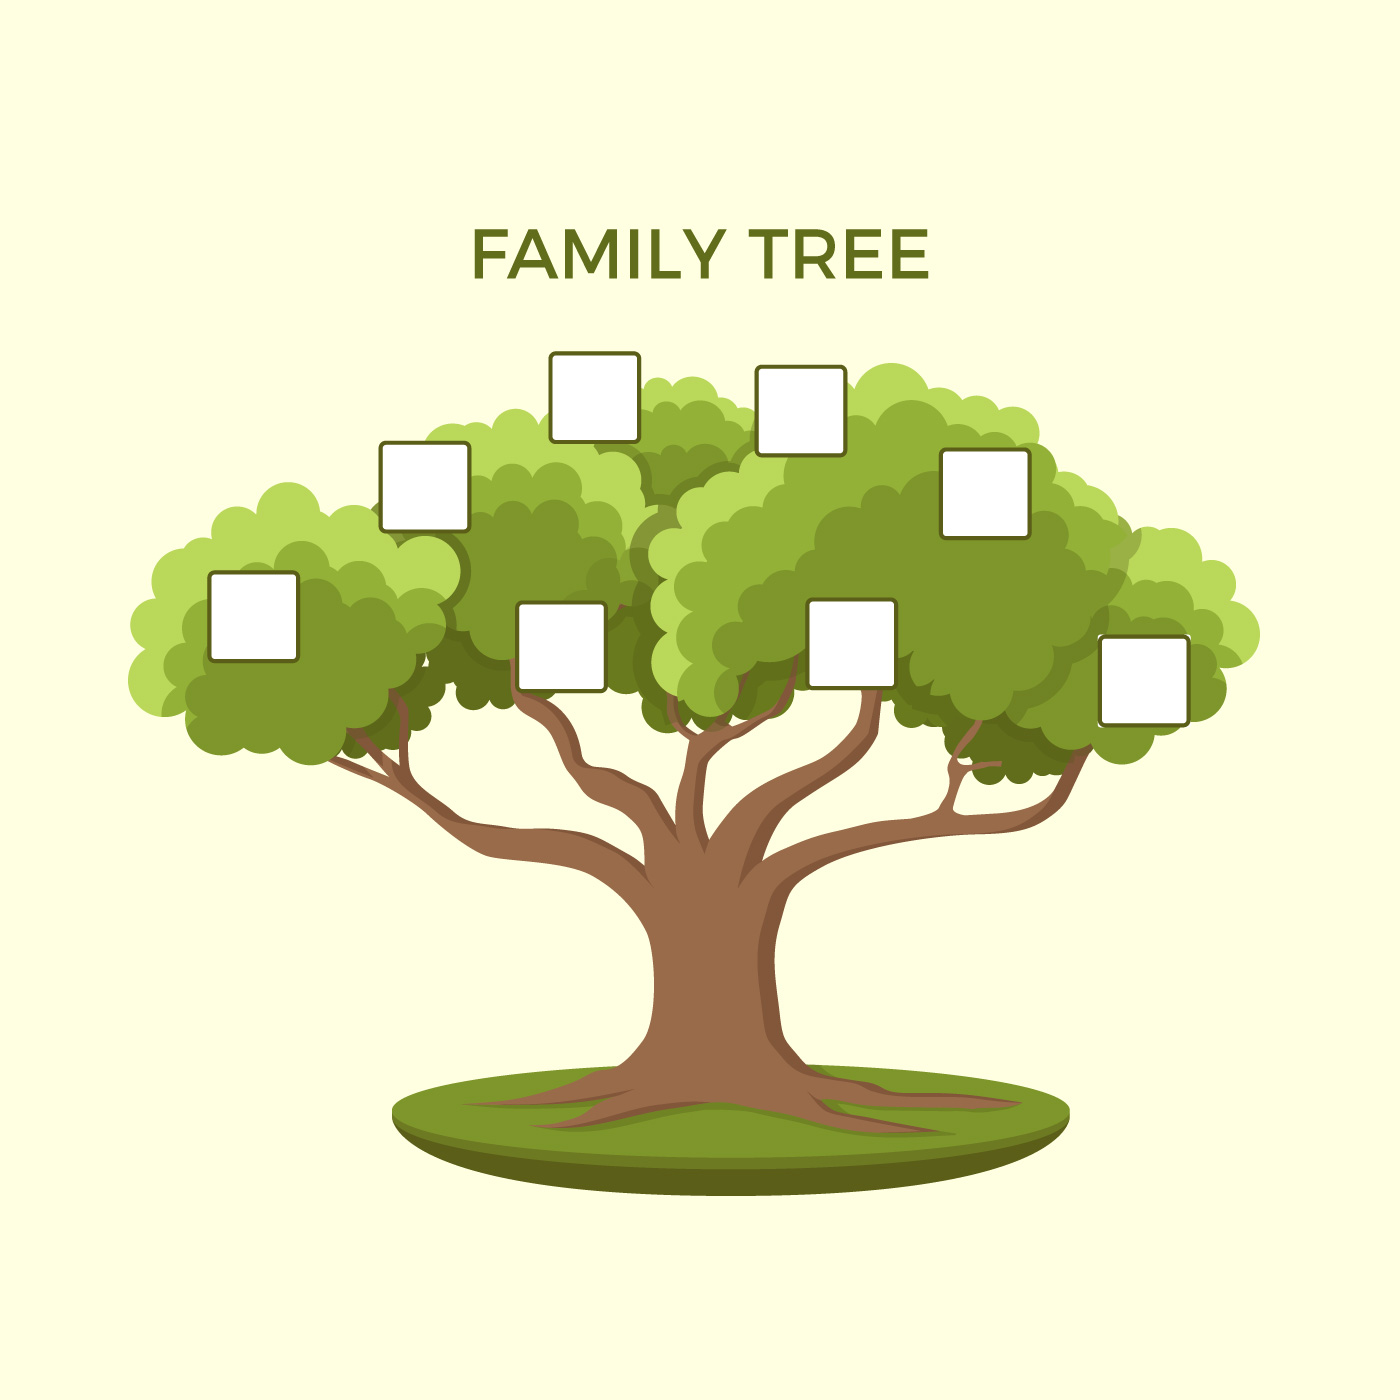 Family Tree Illustration Template - Download Free Vectors ...